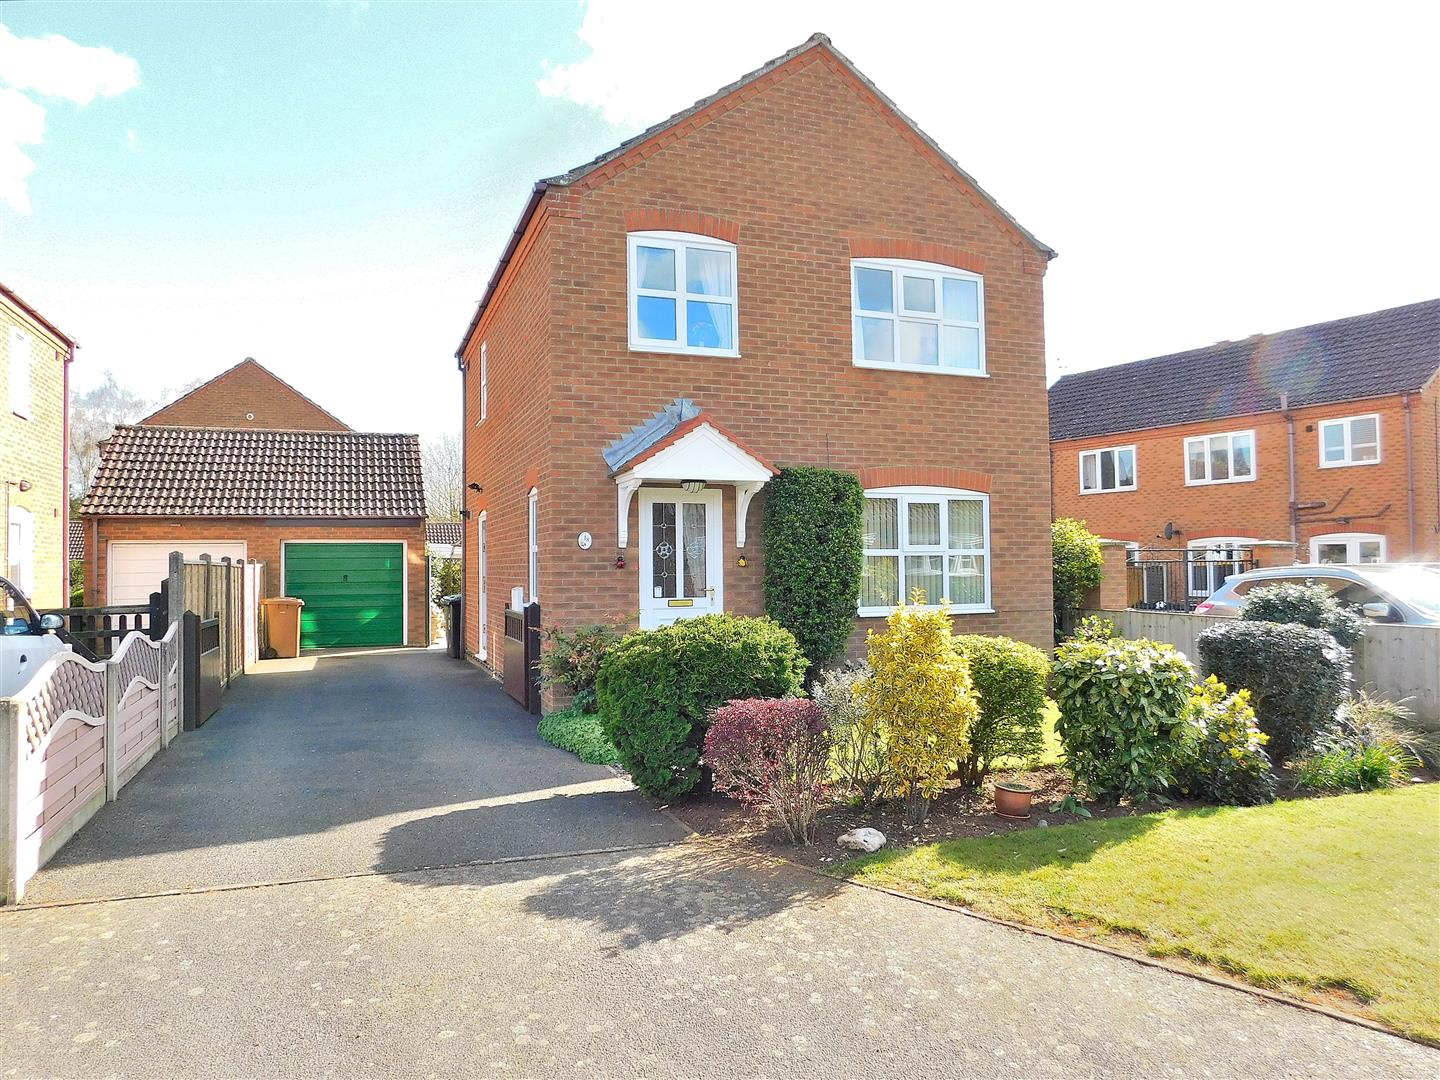 3 bed detached house for sale in Reg Houchen Road, King's Lynn  - Property Image 1